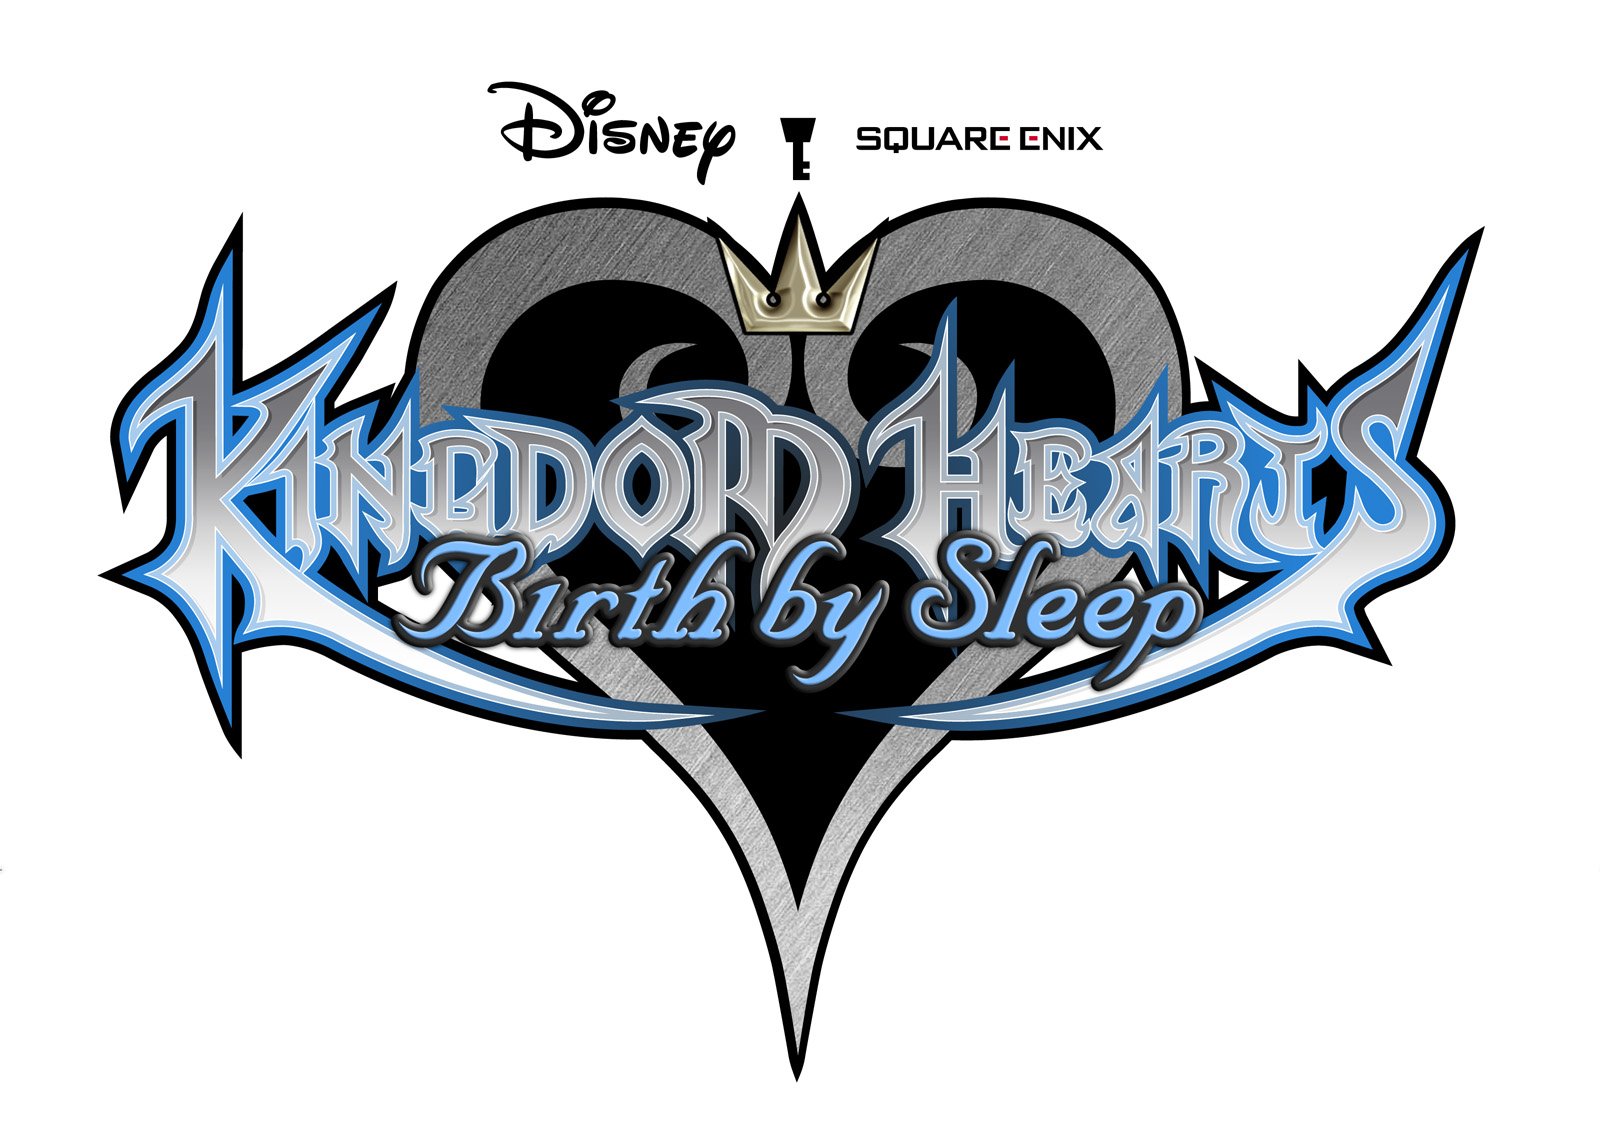 Below I present you all Kingdom Hearts logo from each series